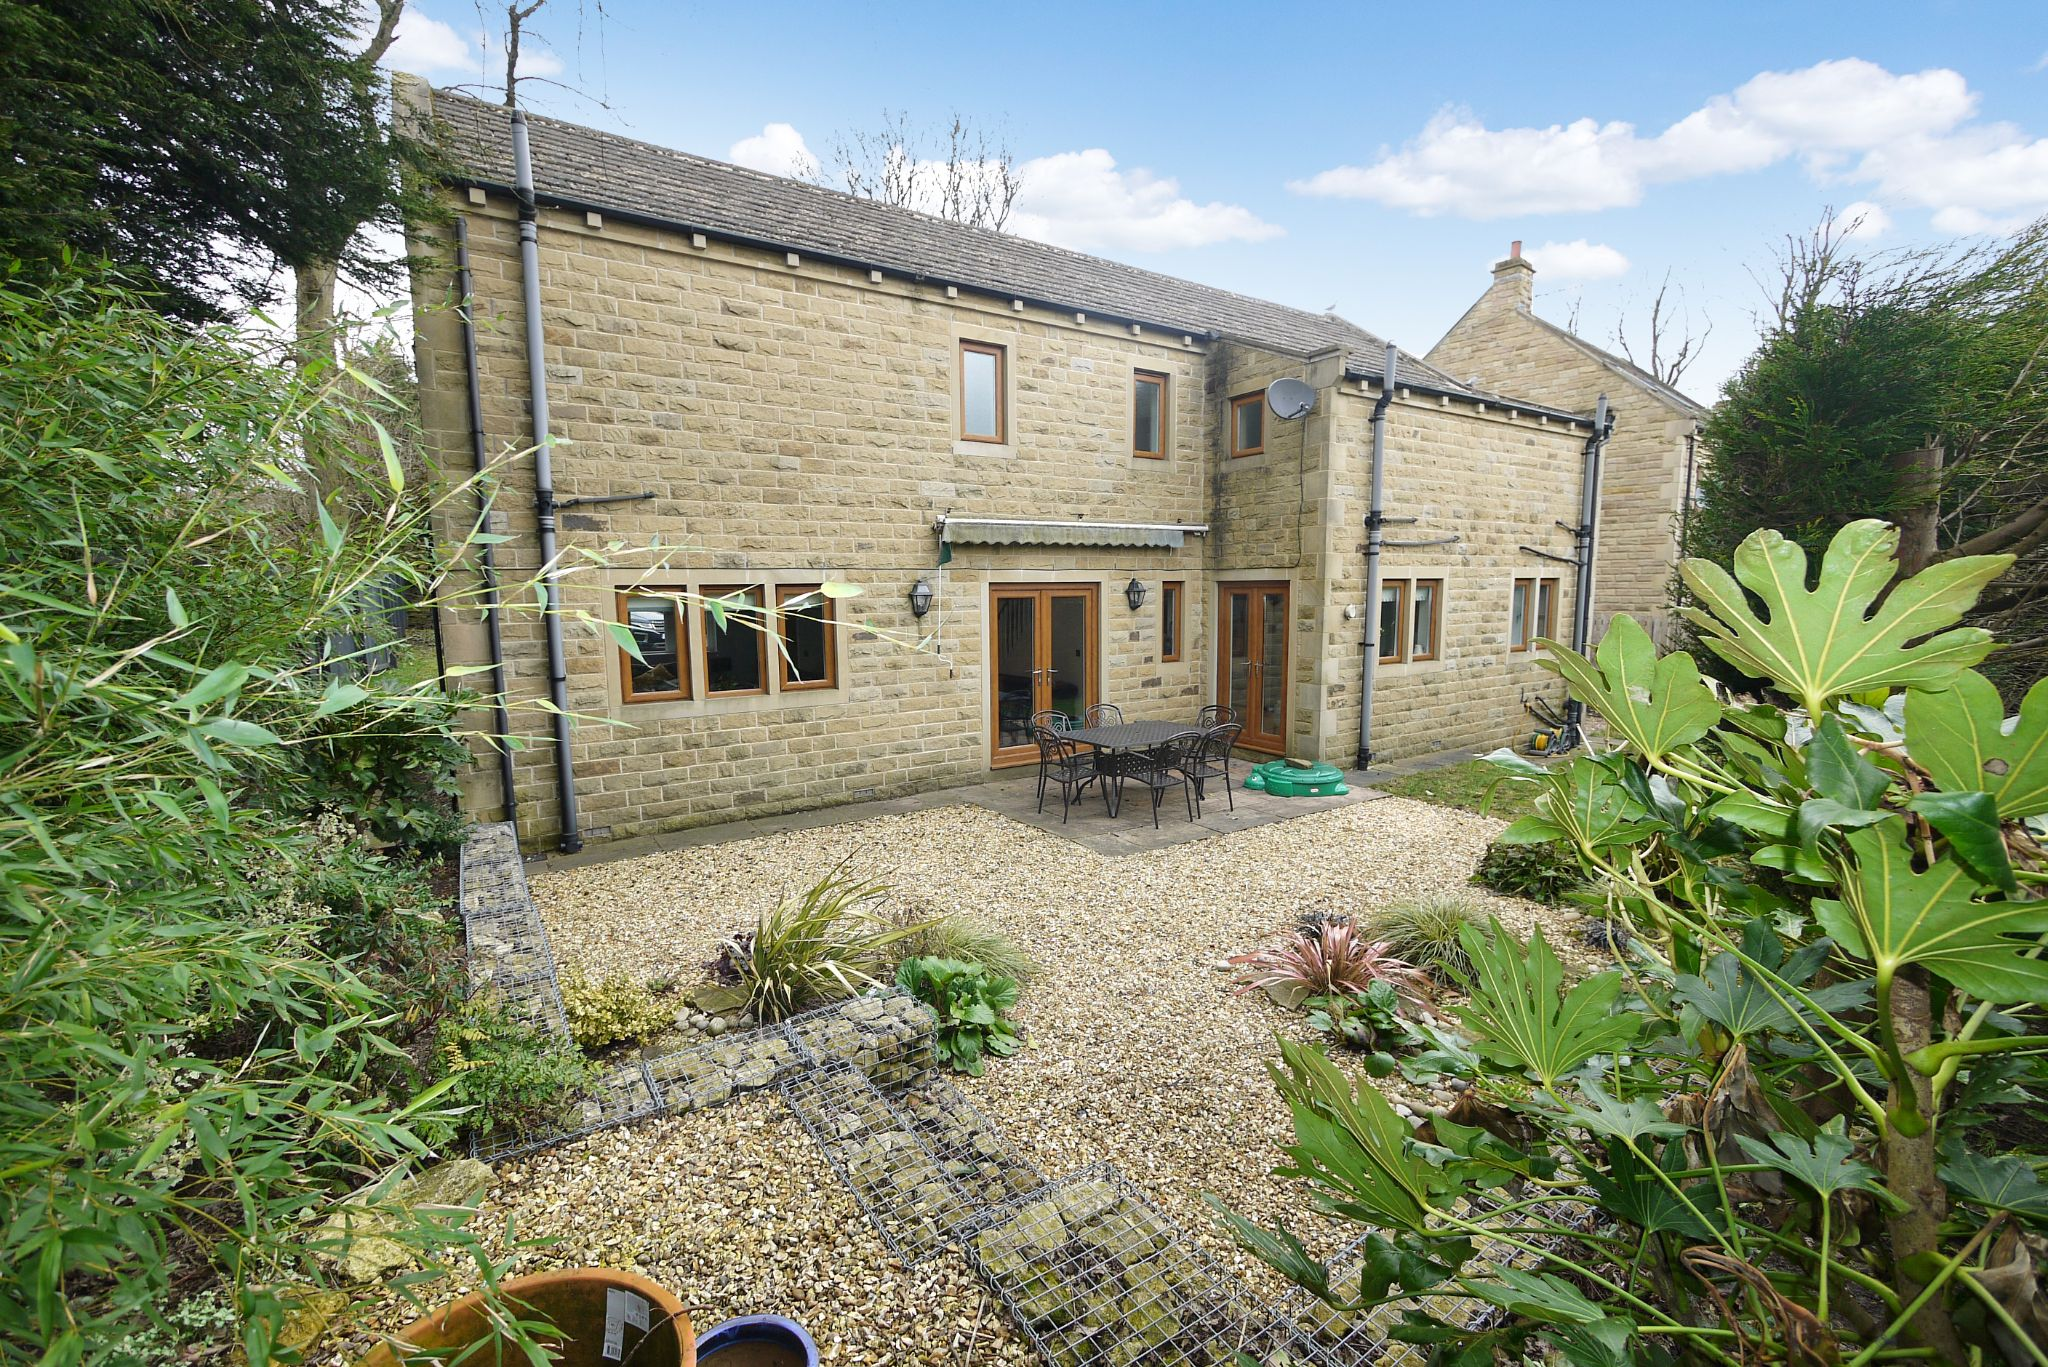 4 bedroom detached house For Sale in Brighouse - Photograph 9.